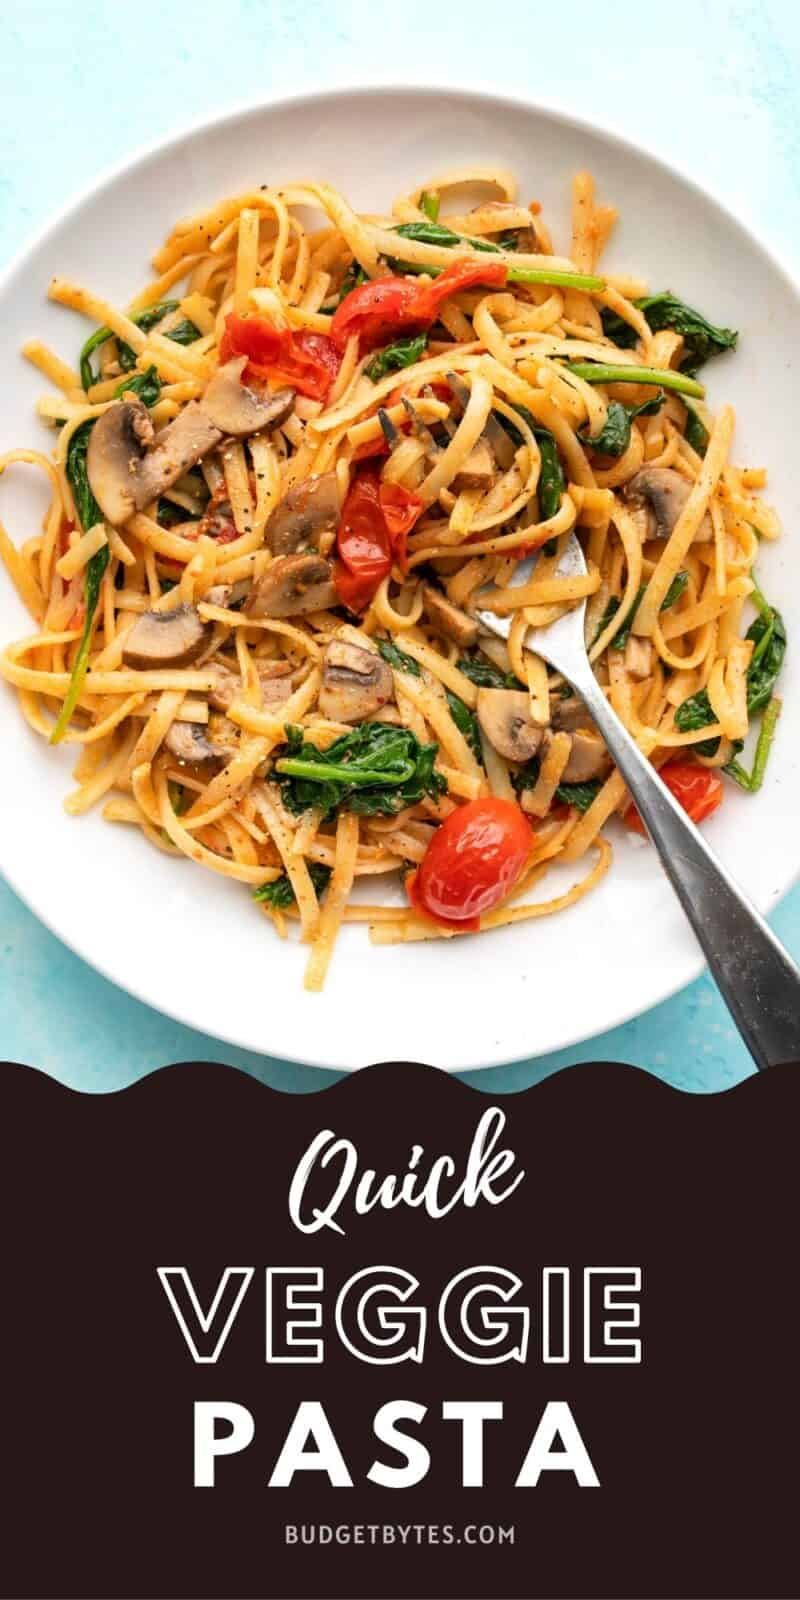 Quick veggie pasta in a bowl with a fork, title text at the bottom